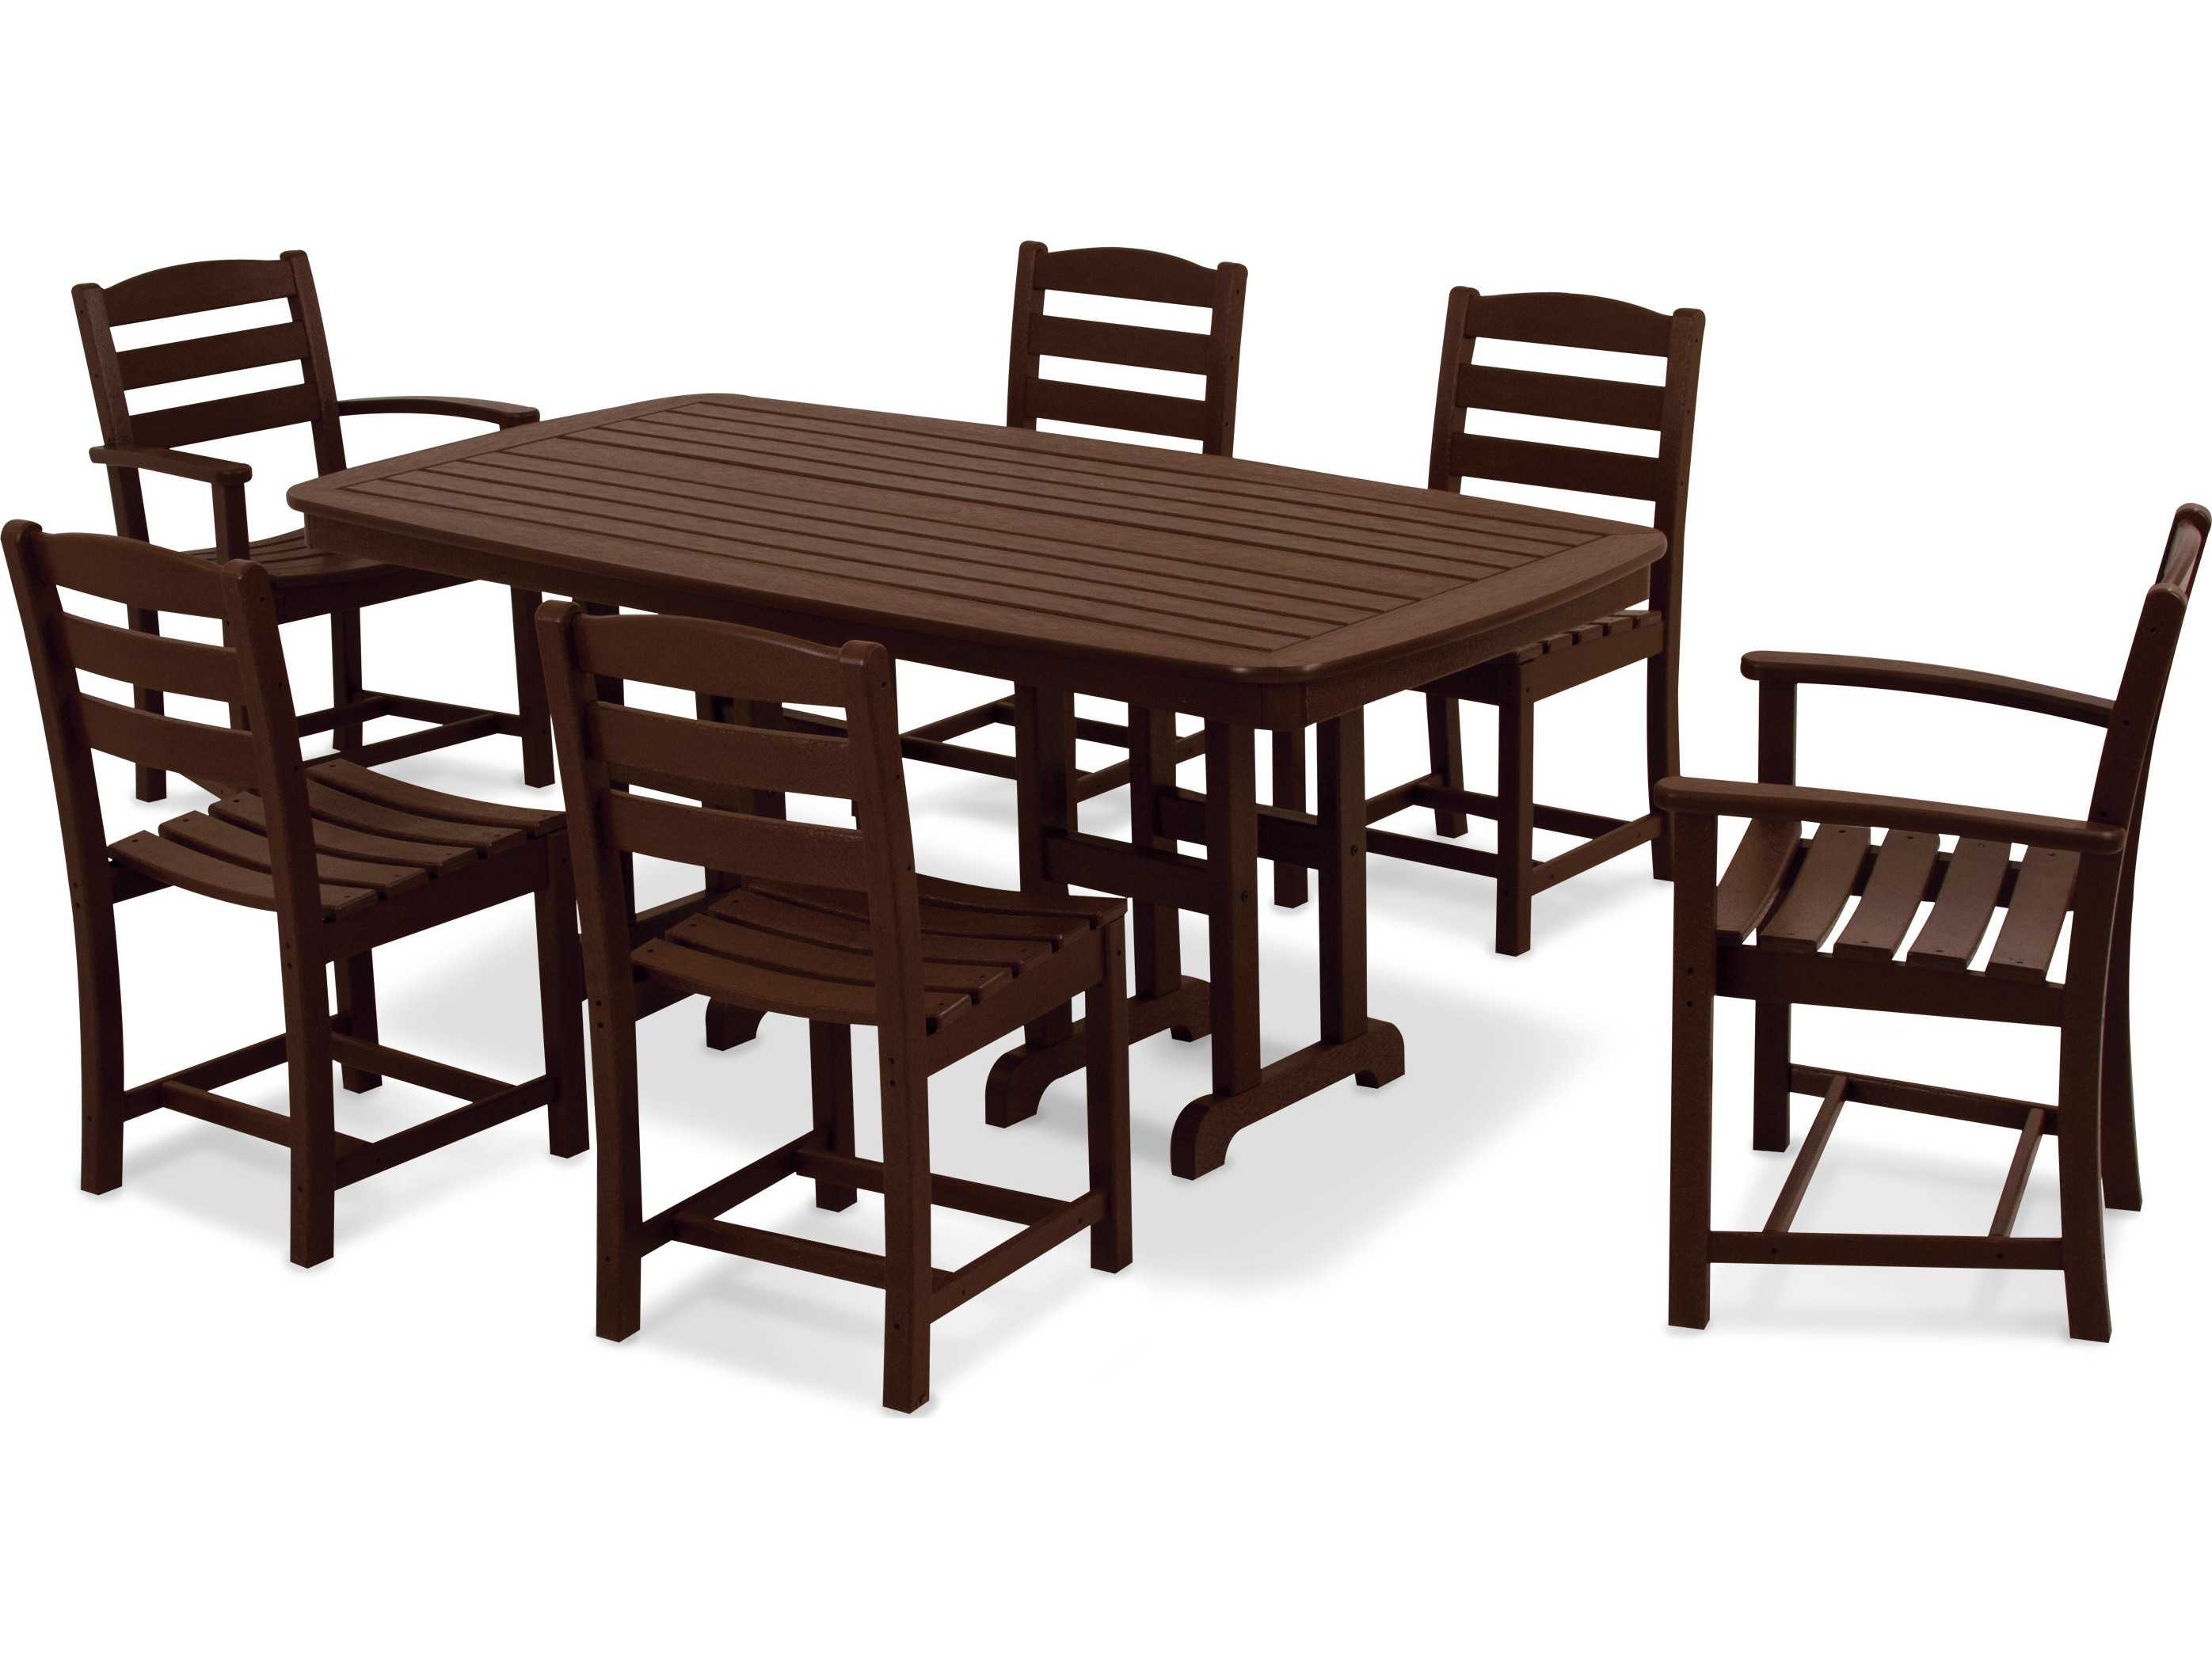 POLYWOOD La Casa Cafe Casual Patio Dining Set Six Chairs One Table PWS131 1